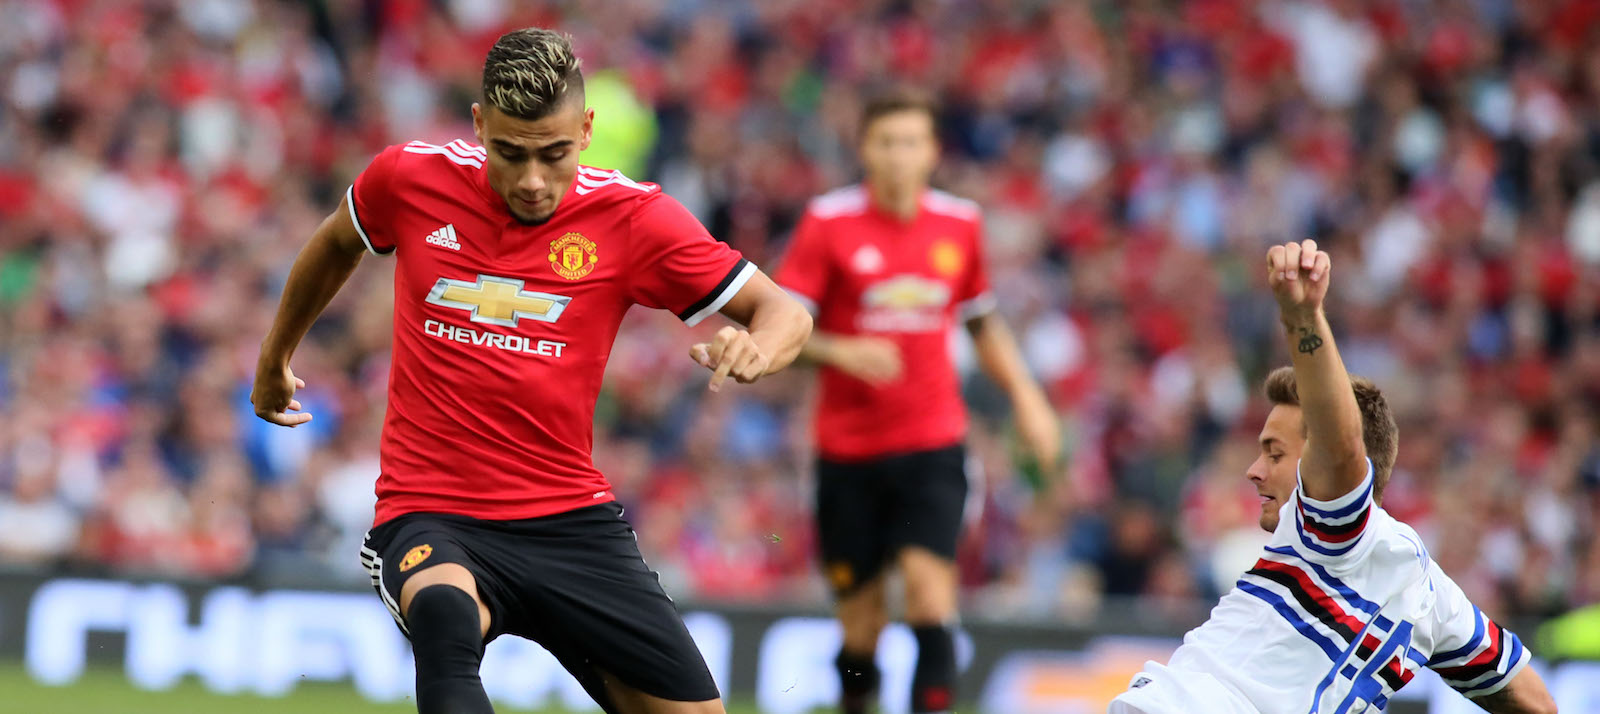 Andreas Pereira: I want to stay at Valencia, I feel good